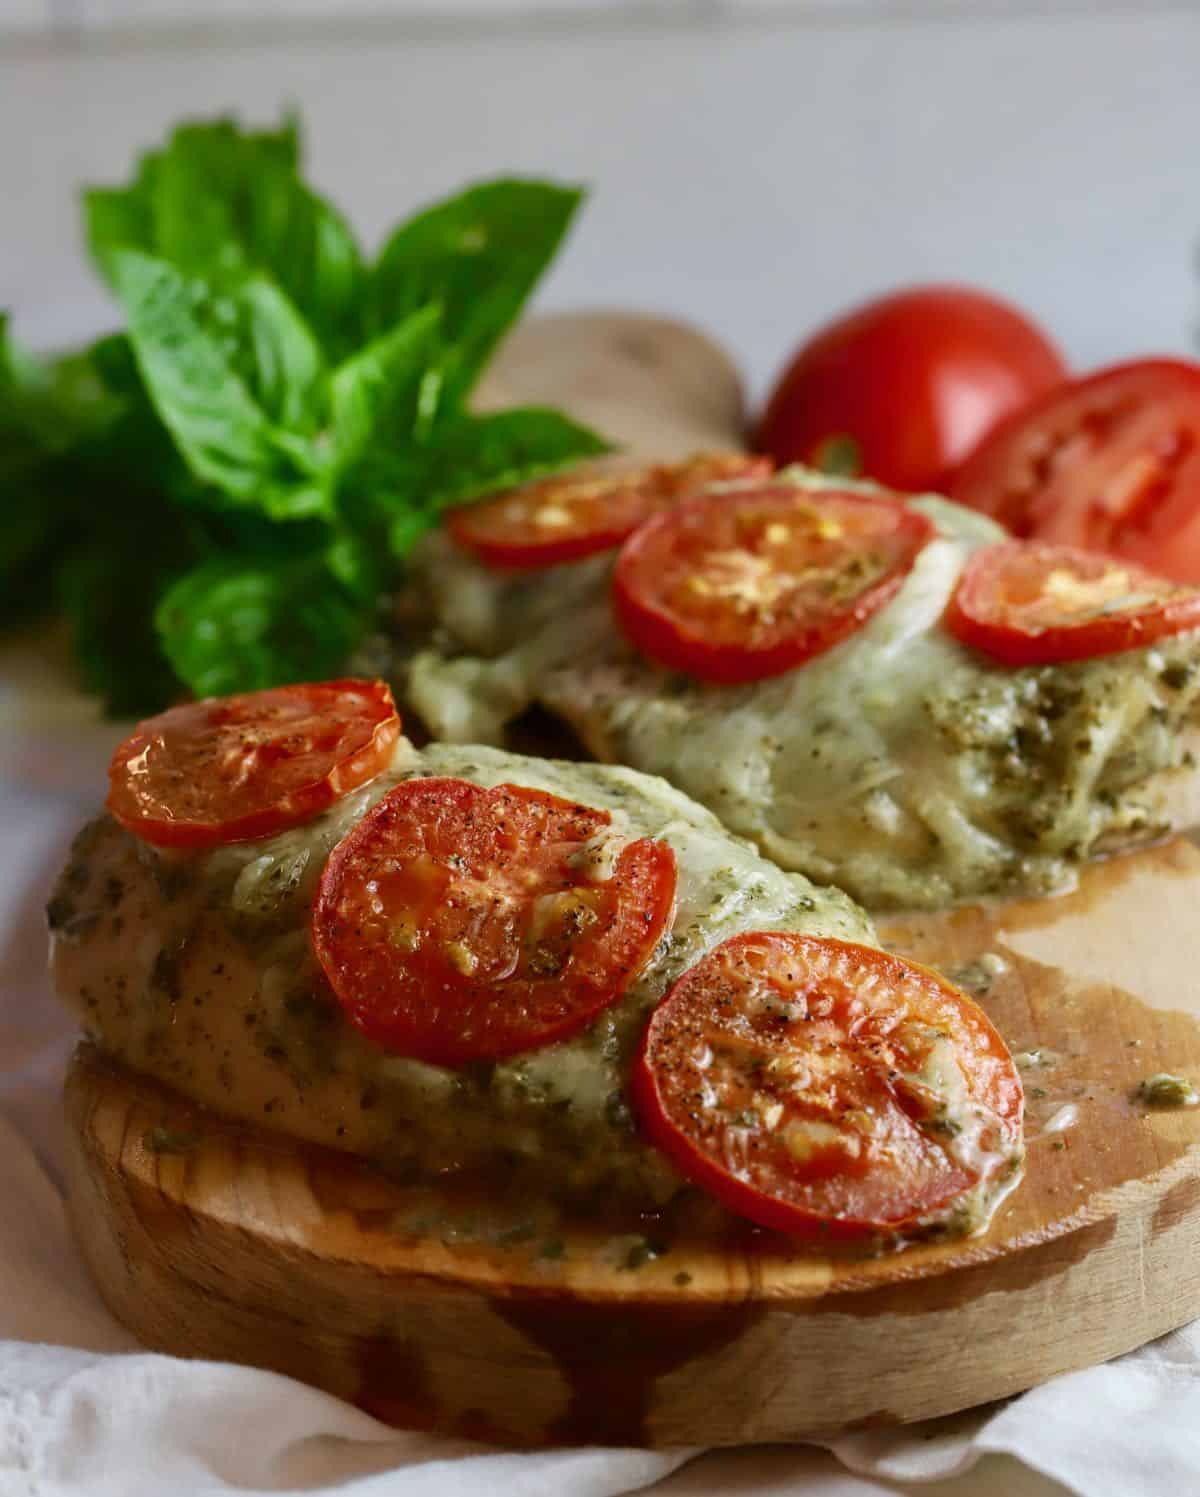 Baked Pesto Chicken on a wooden cutting board.